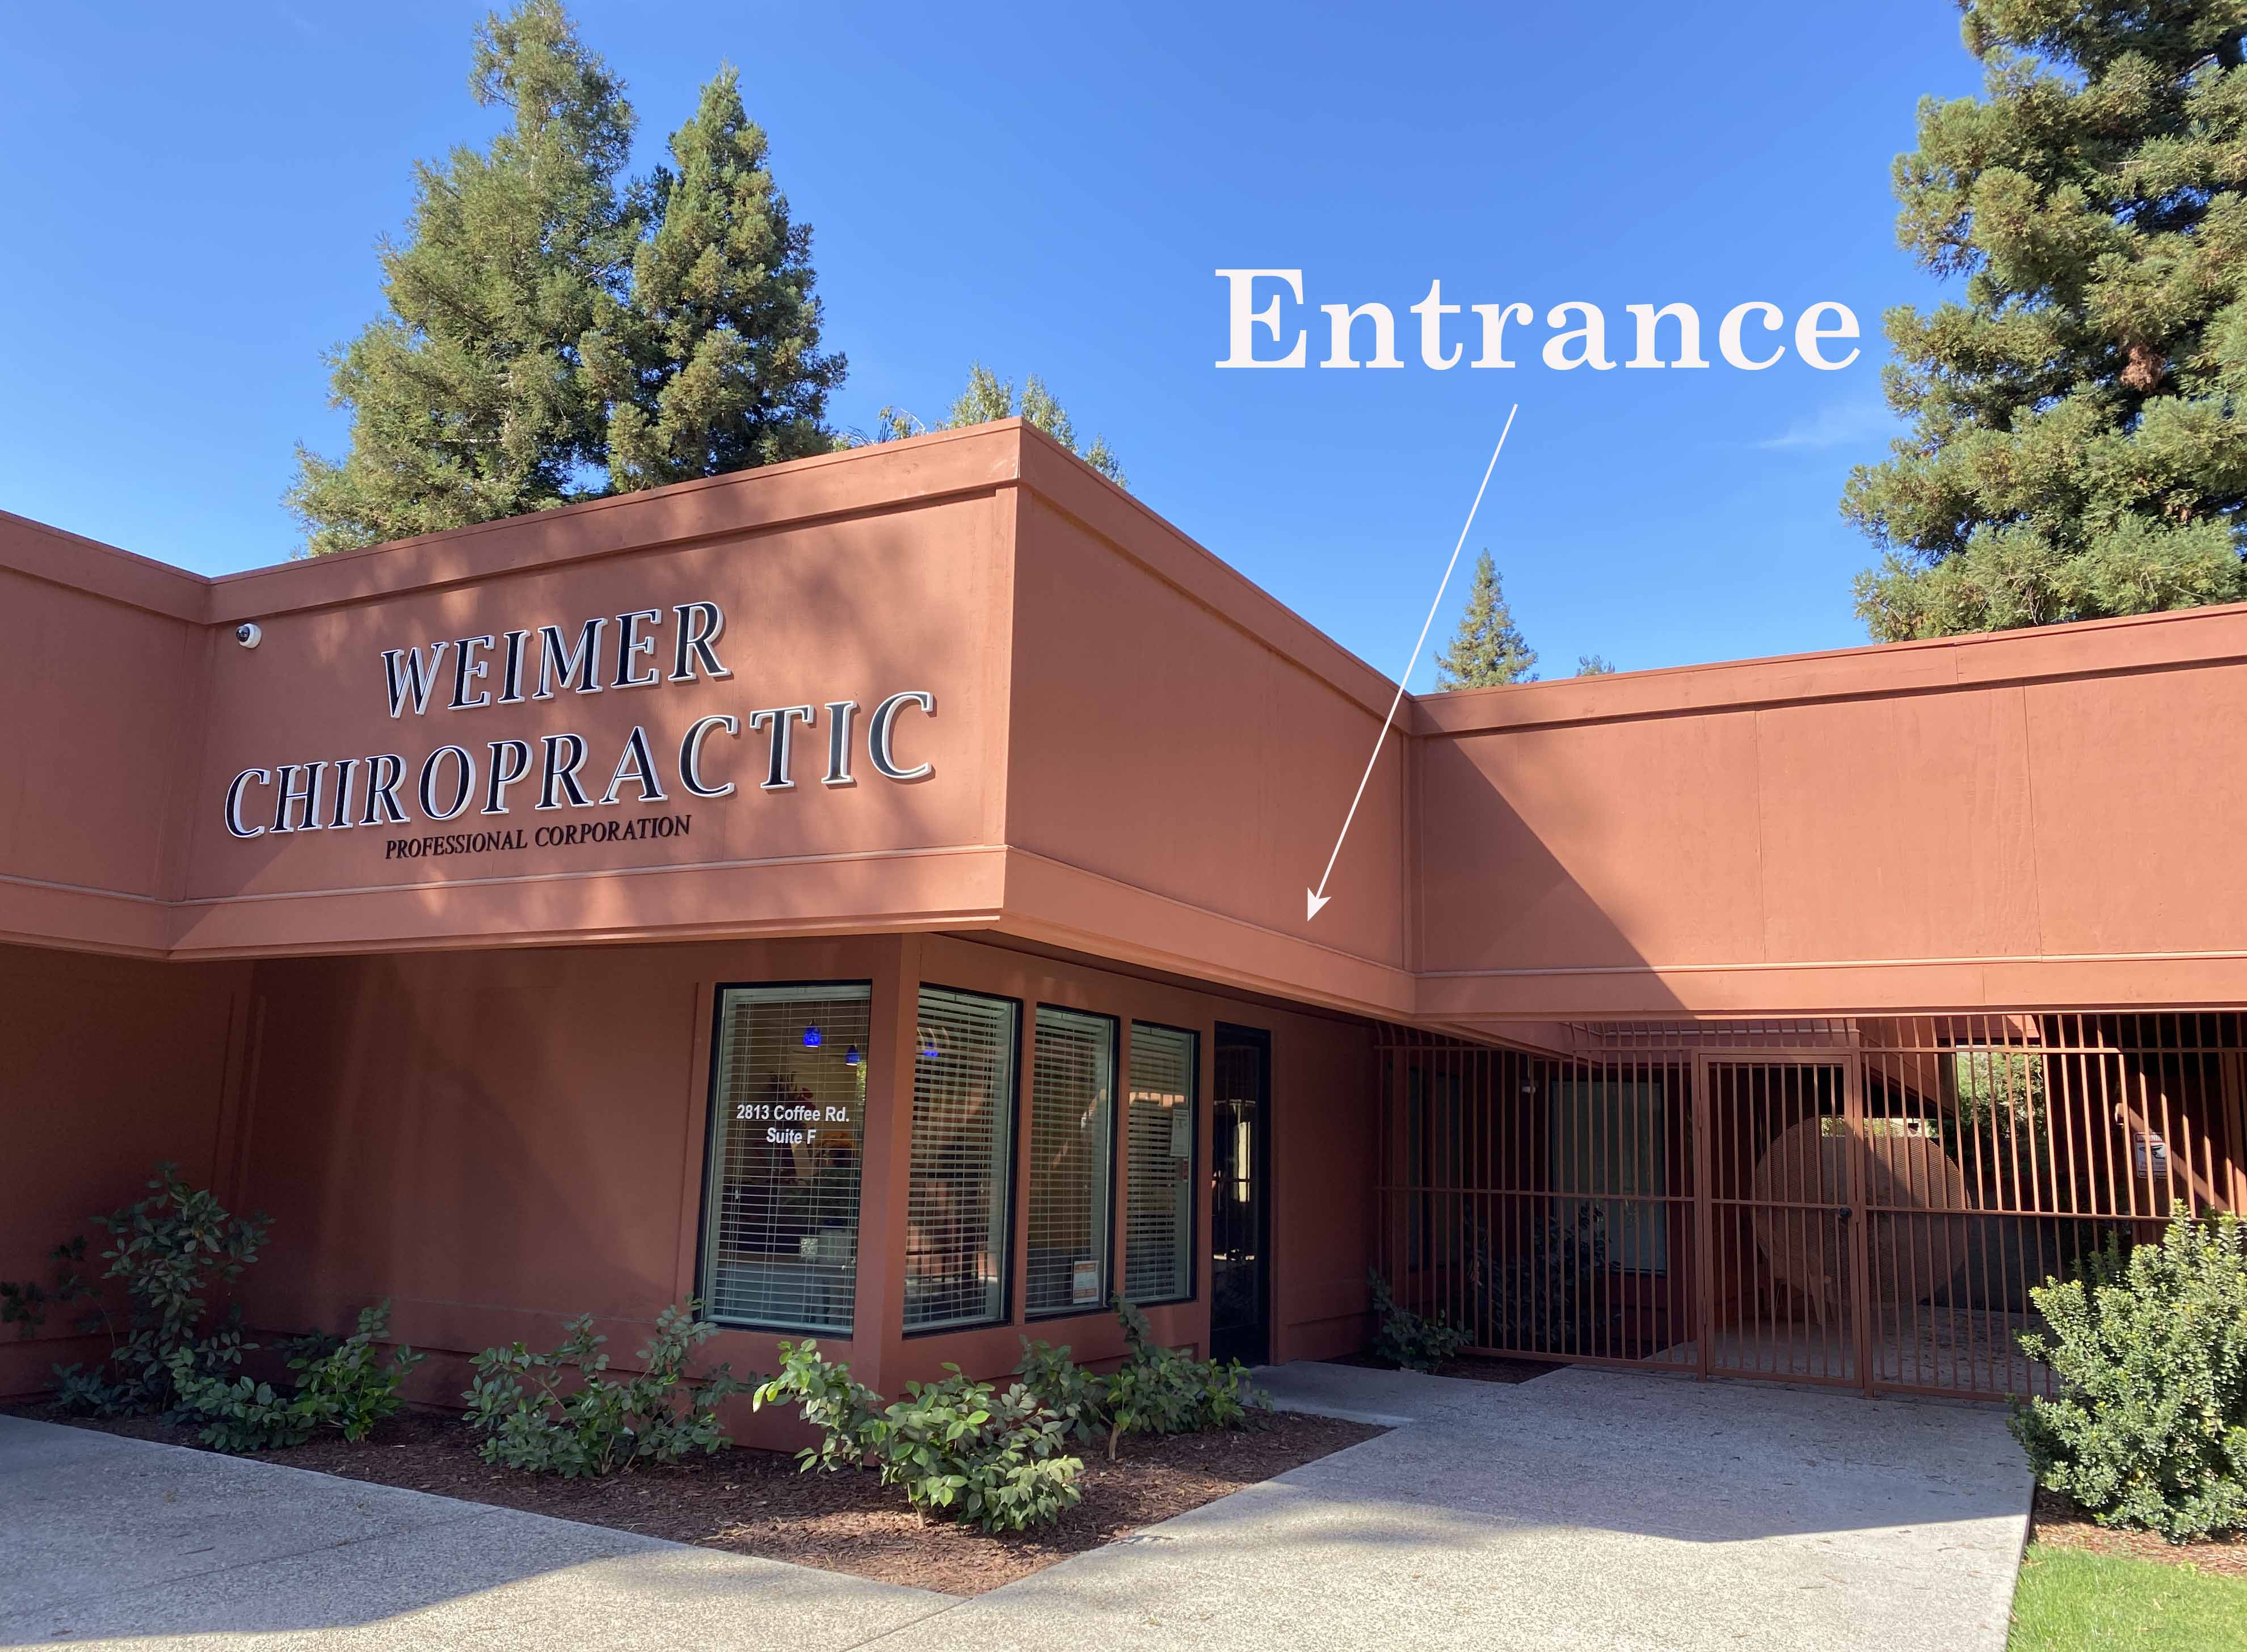 Entrance at Weimer Chiropractic